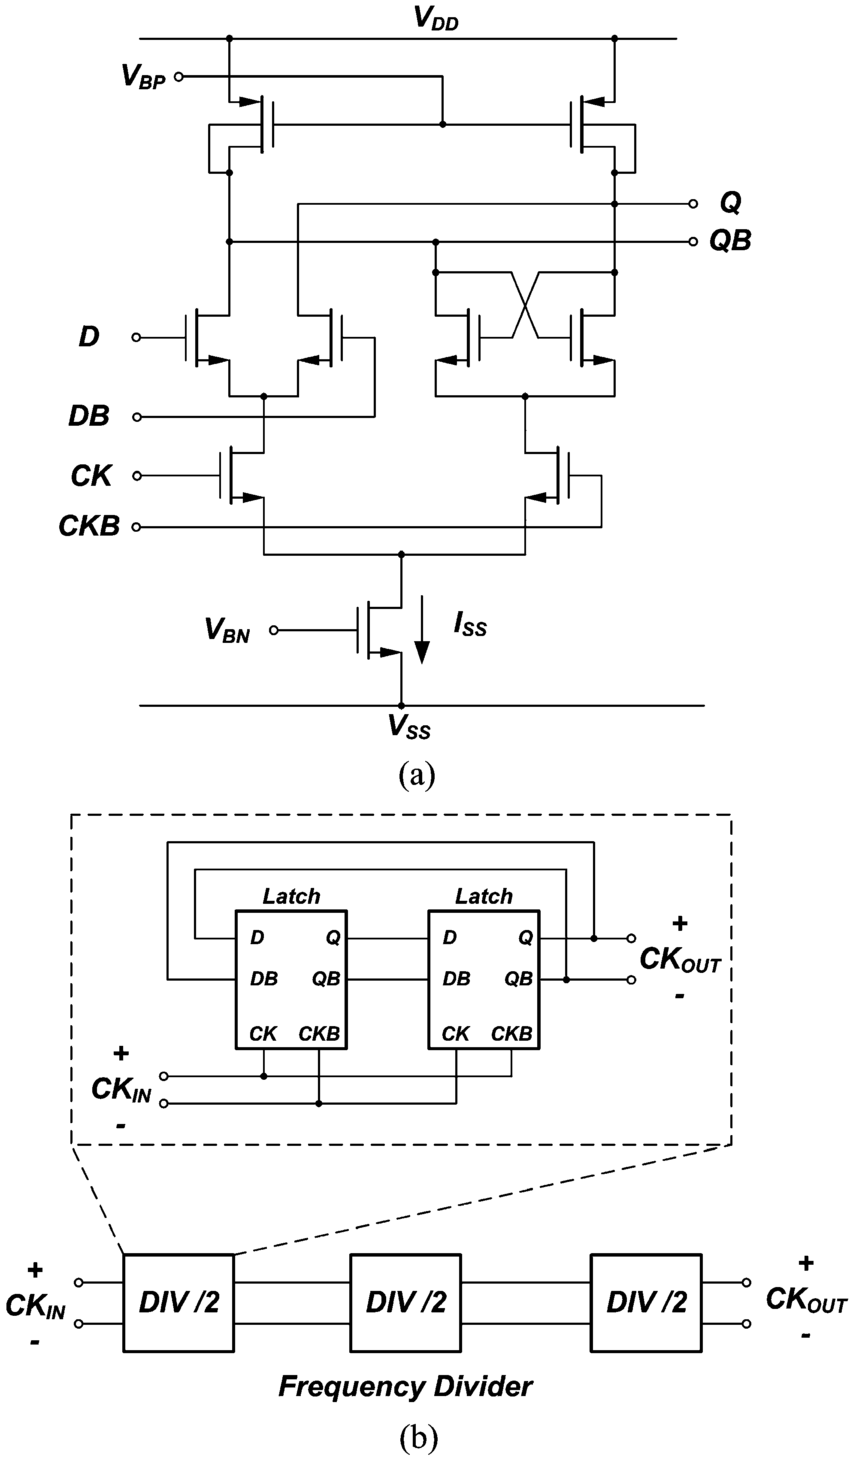 medium resolution of  a stscl latch circuit schematic and b the topology of the